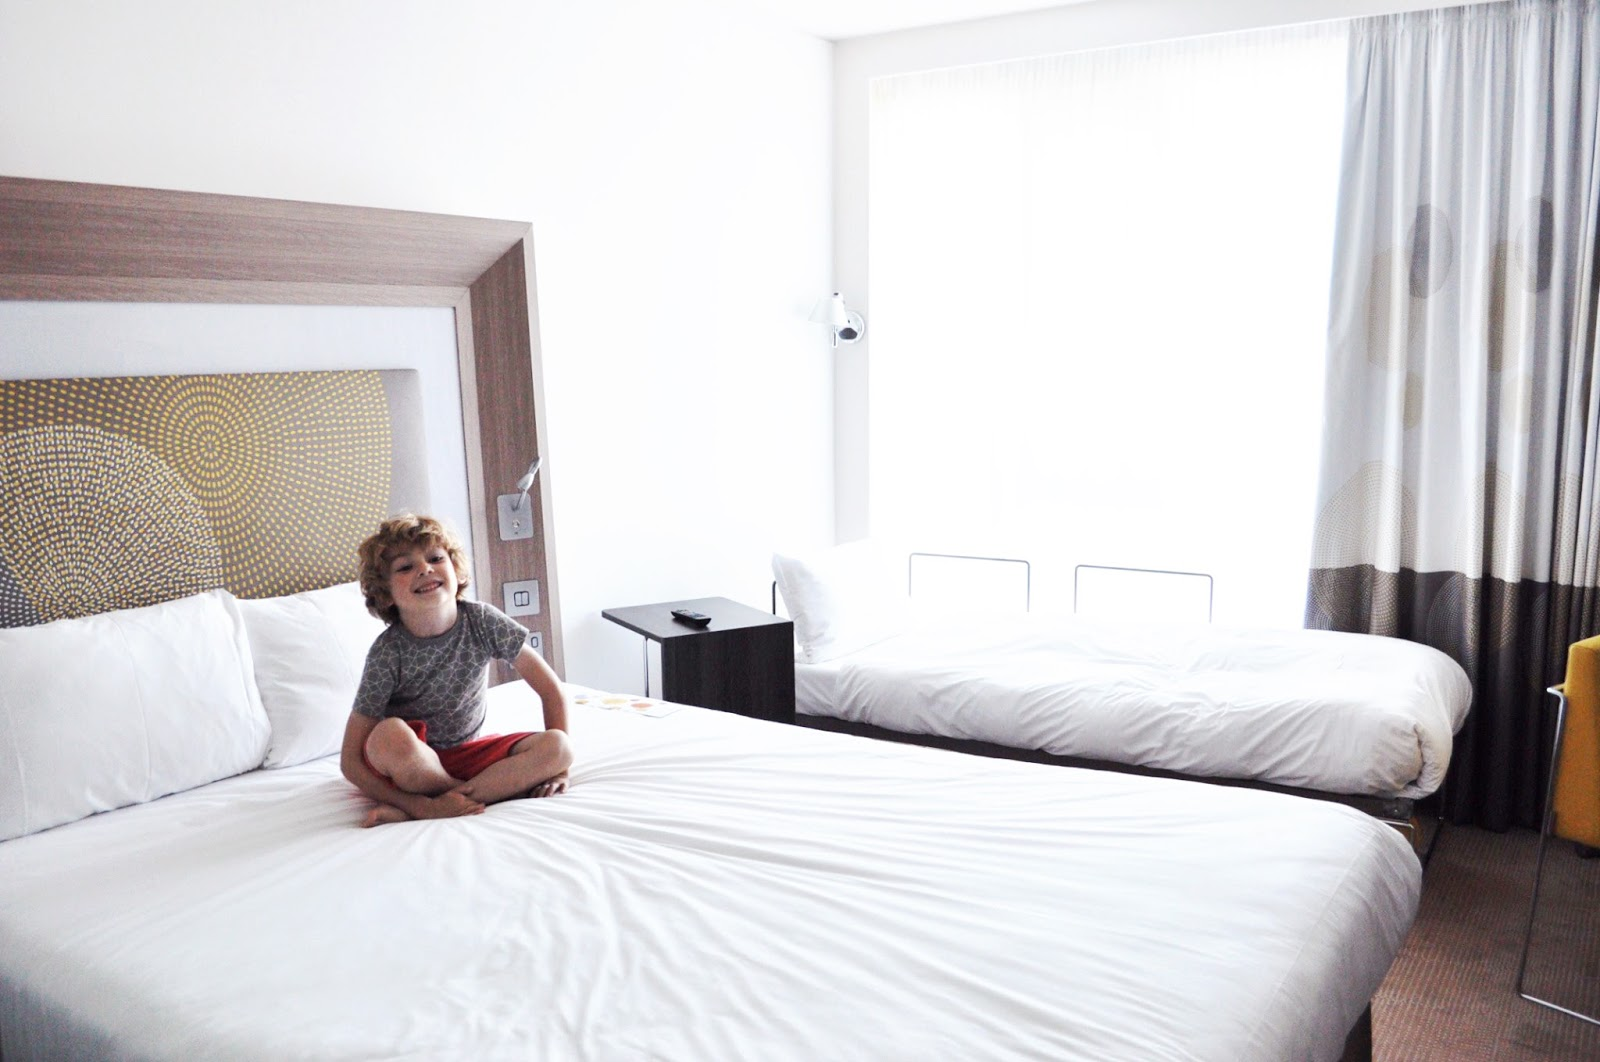 24 hours in London, chic hotel, Novotel blackfriars london, travel with kids